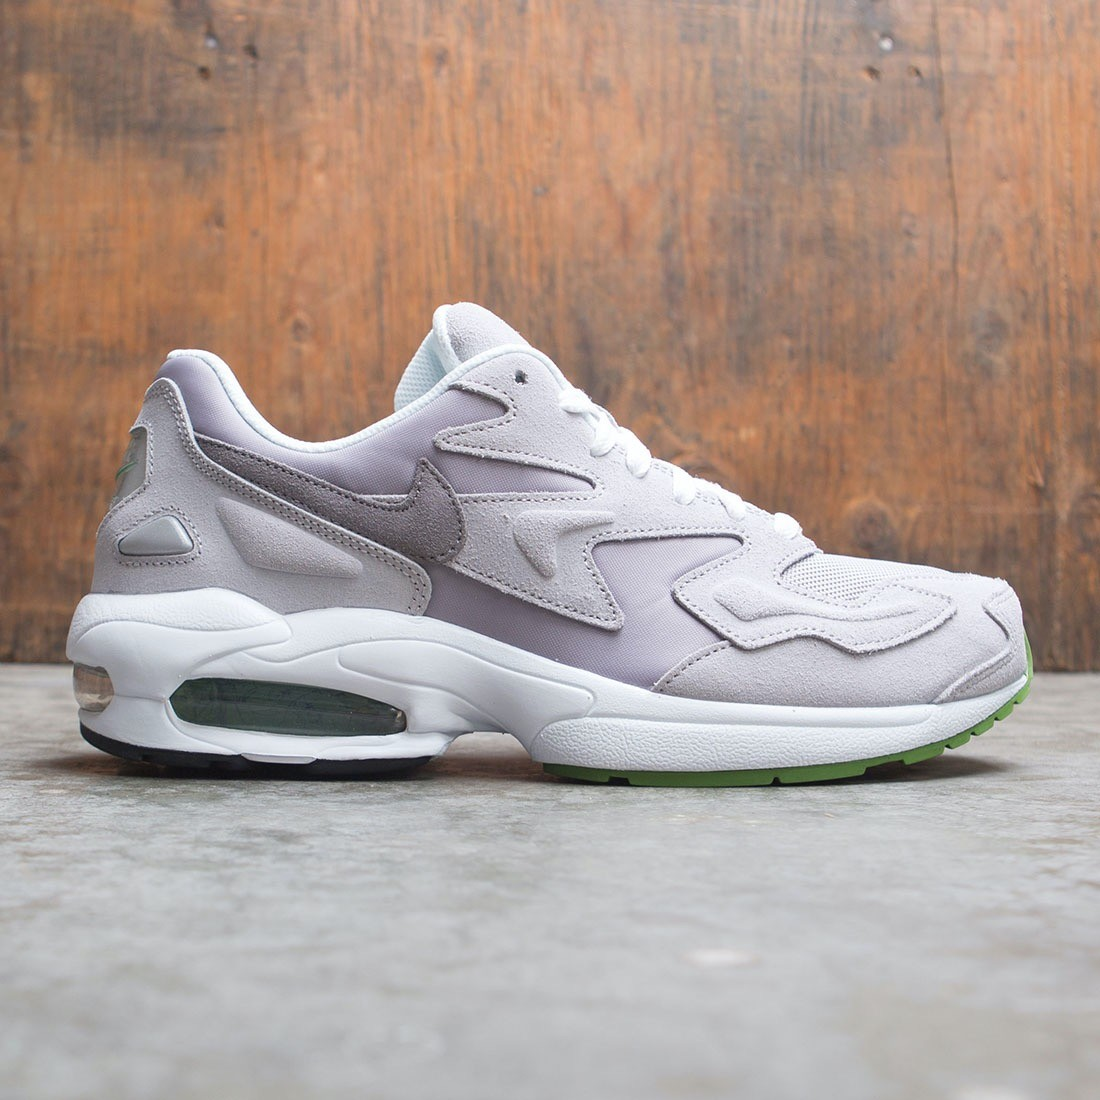 Largo Mecánica invernadero  nike men air max2 light lx atmosphere grey gunsmoke chlorophyll